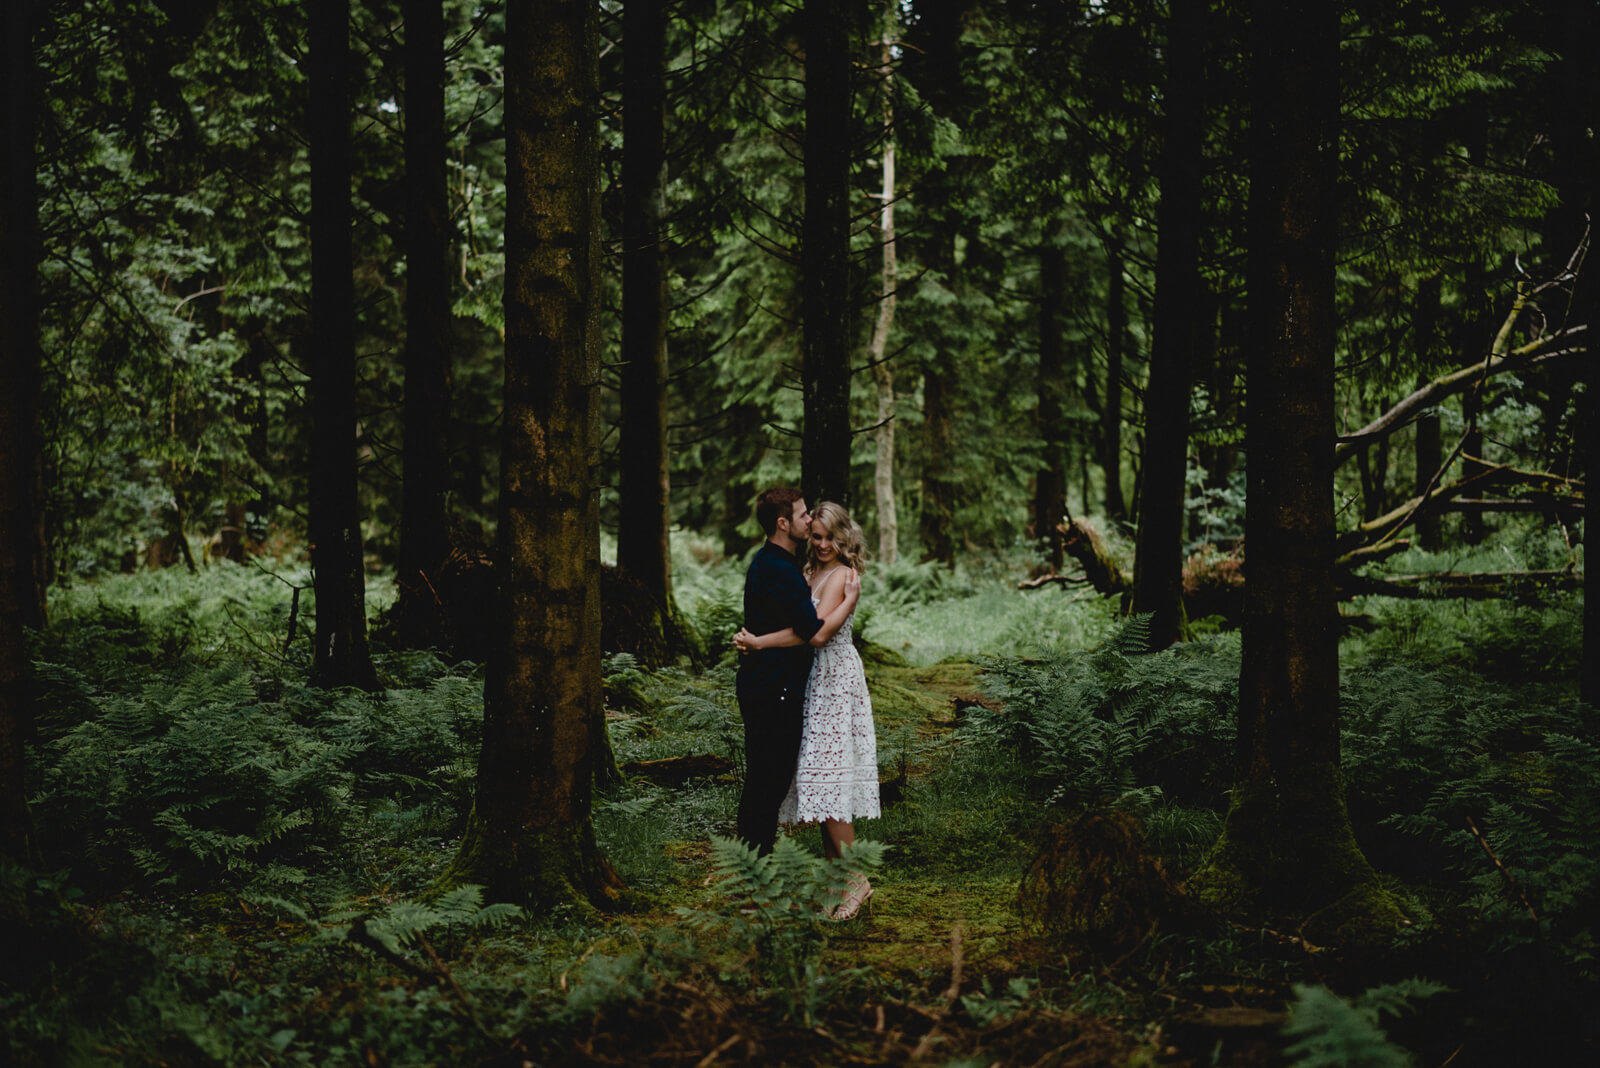 Bath bride and groom in woodland setting